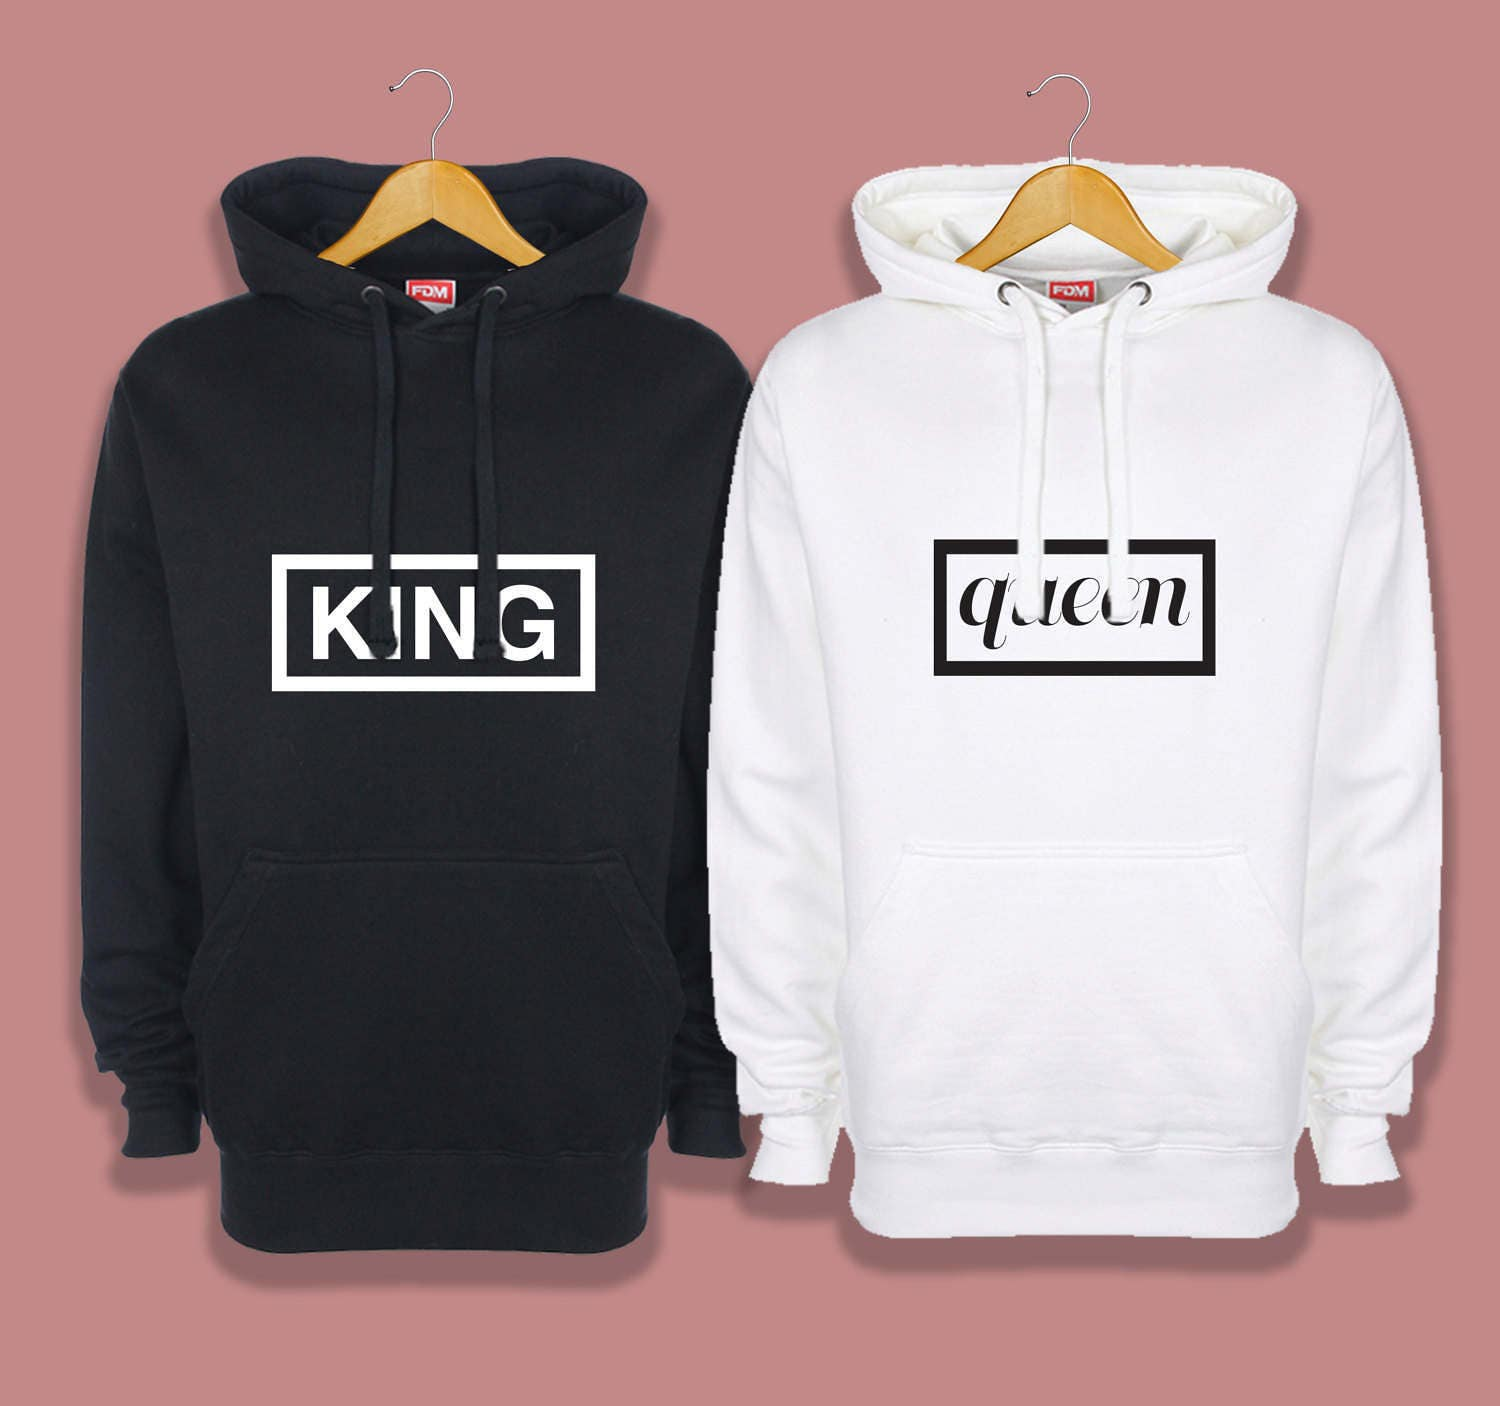 king and queen hoodies couples hoodies mr and mrs hoodies. Black Bedroom Furniture Sets. Home Design Ideas